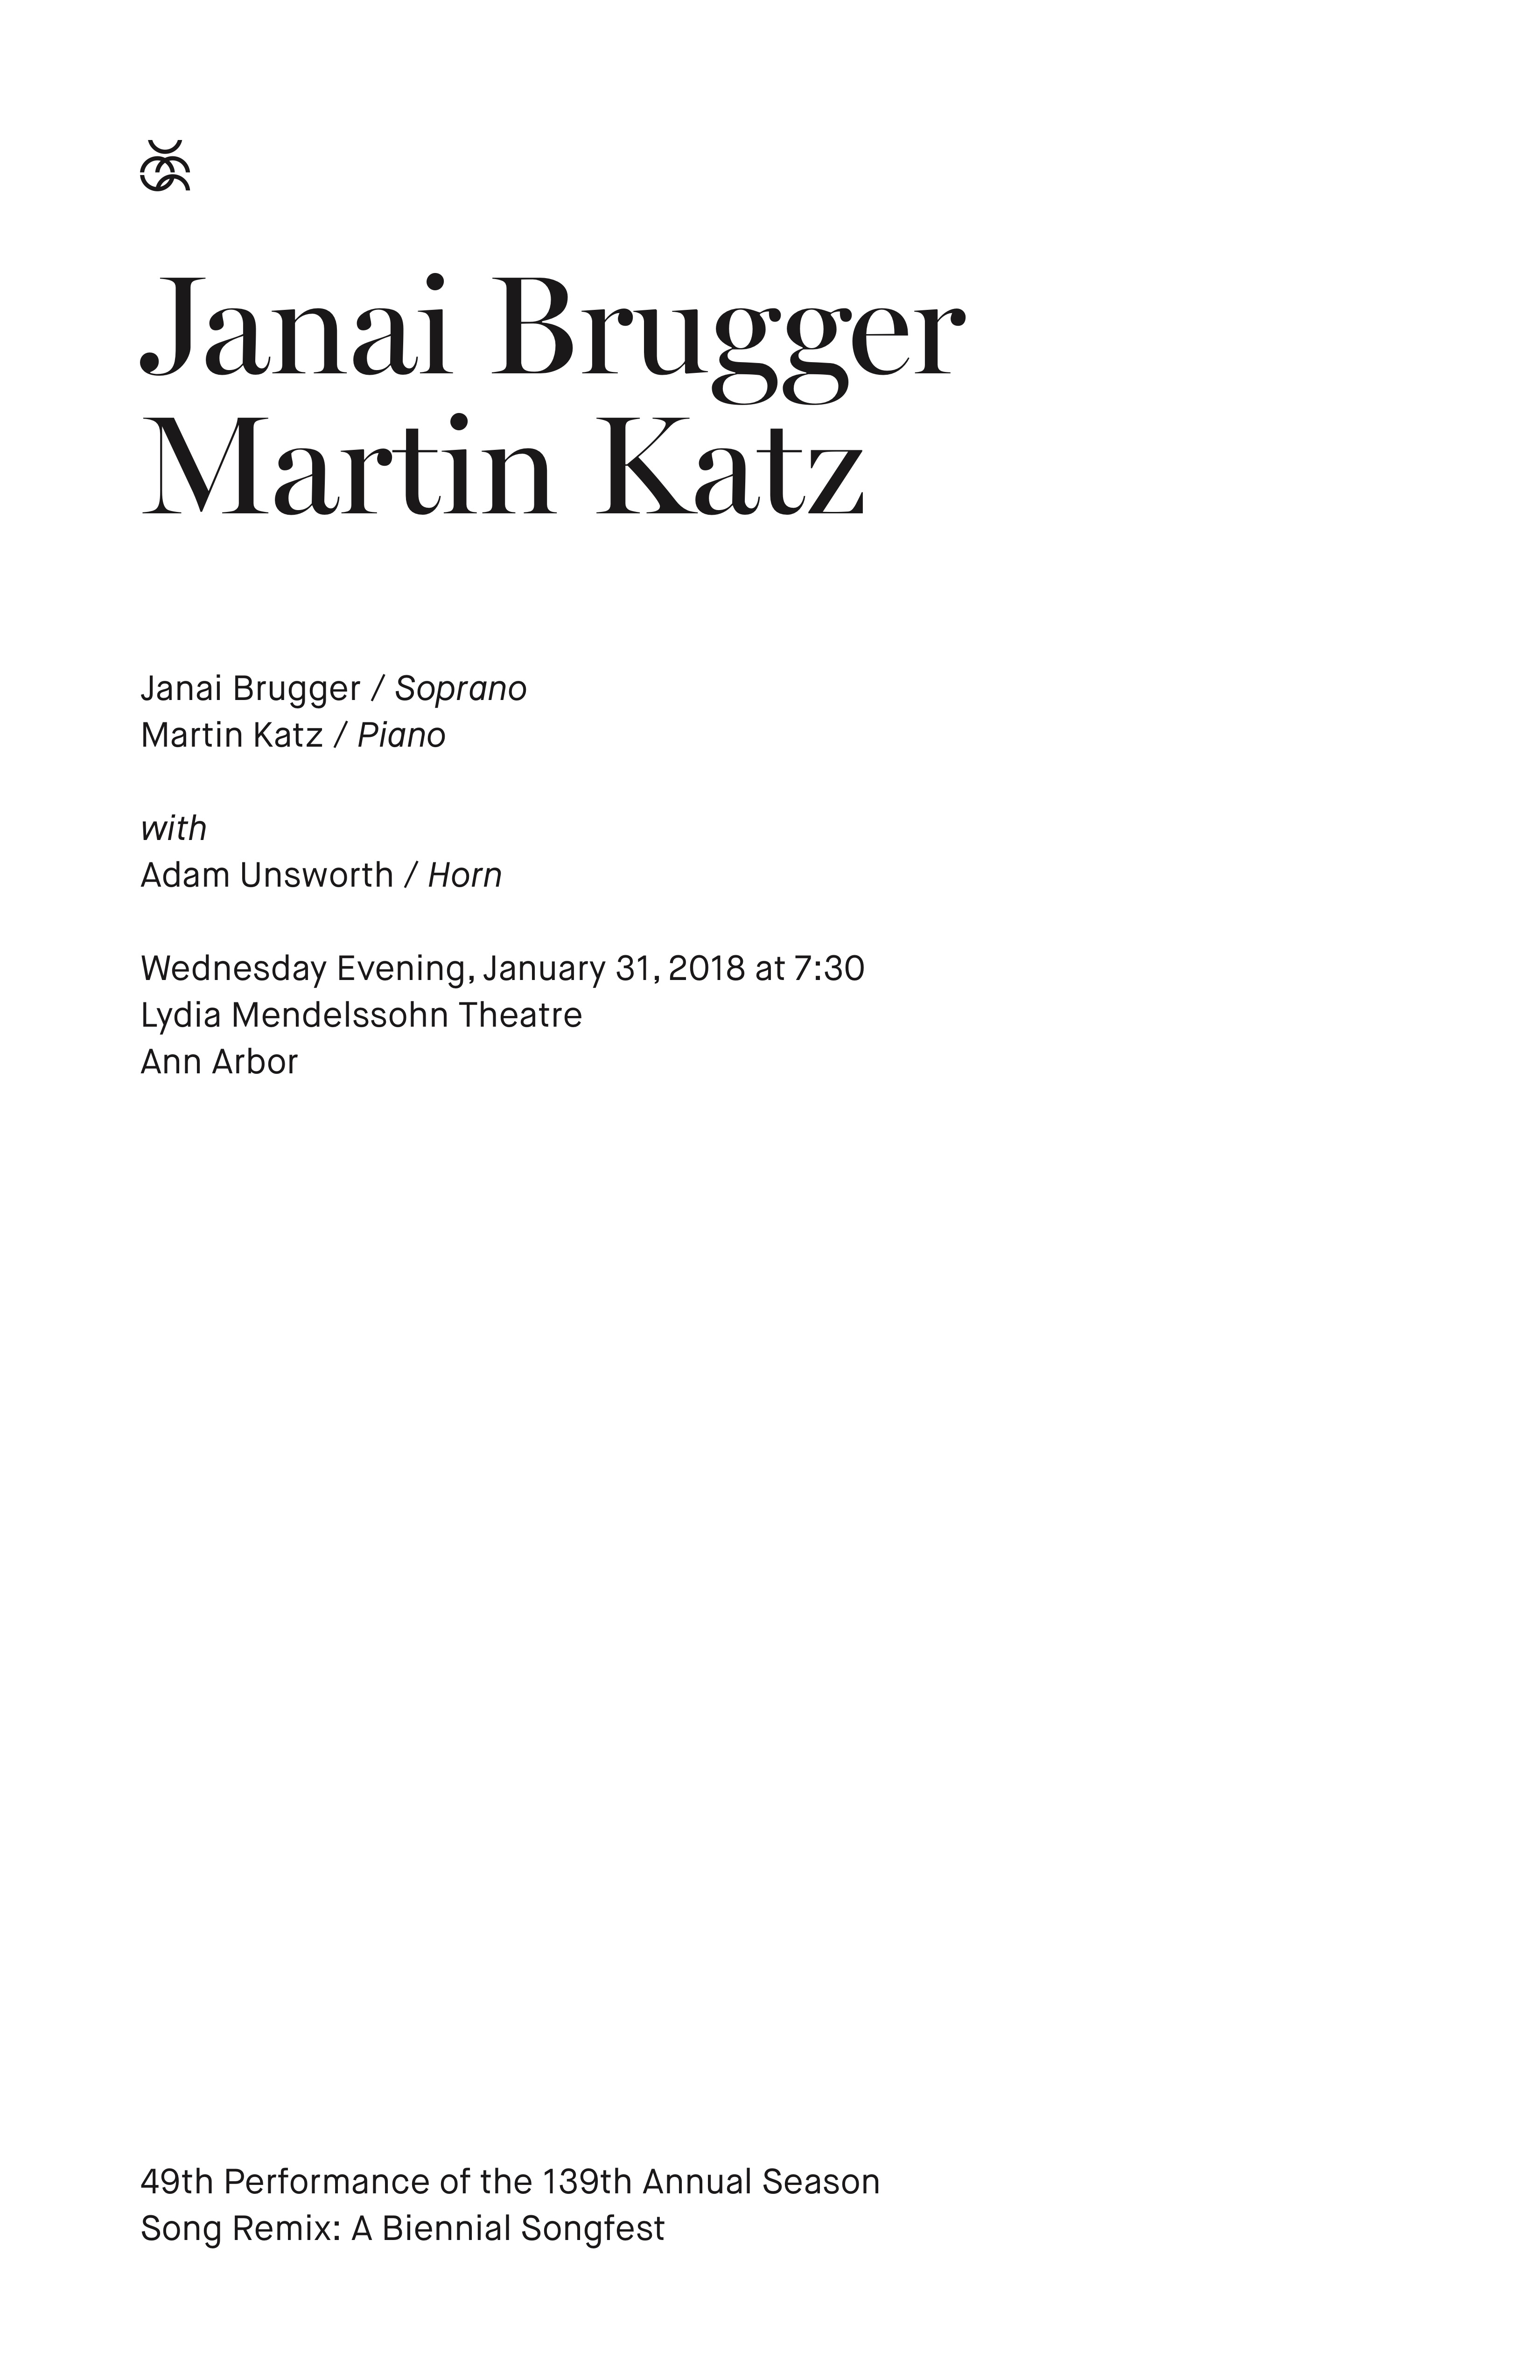 UMS Concert Program, January 31, 2018 - Janai Brugger & Martin Katz image